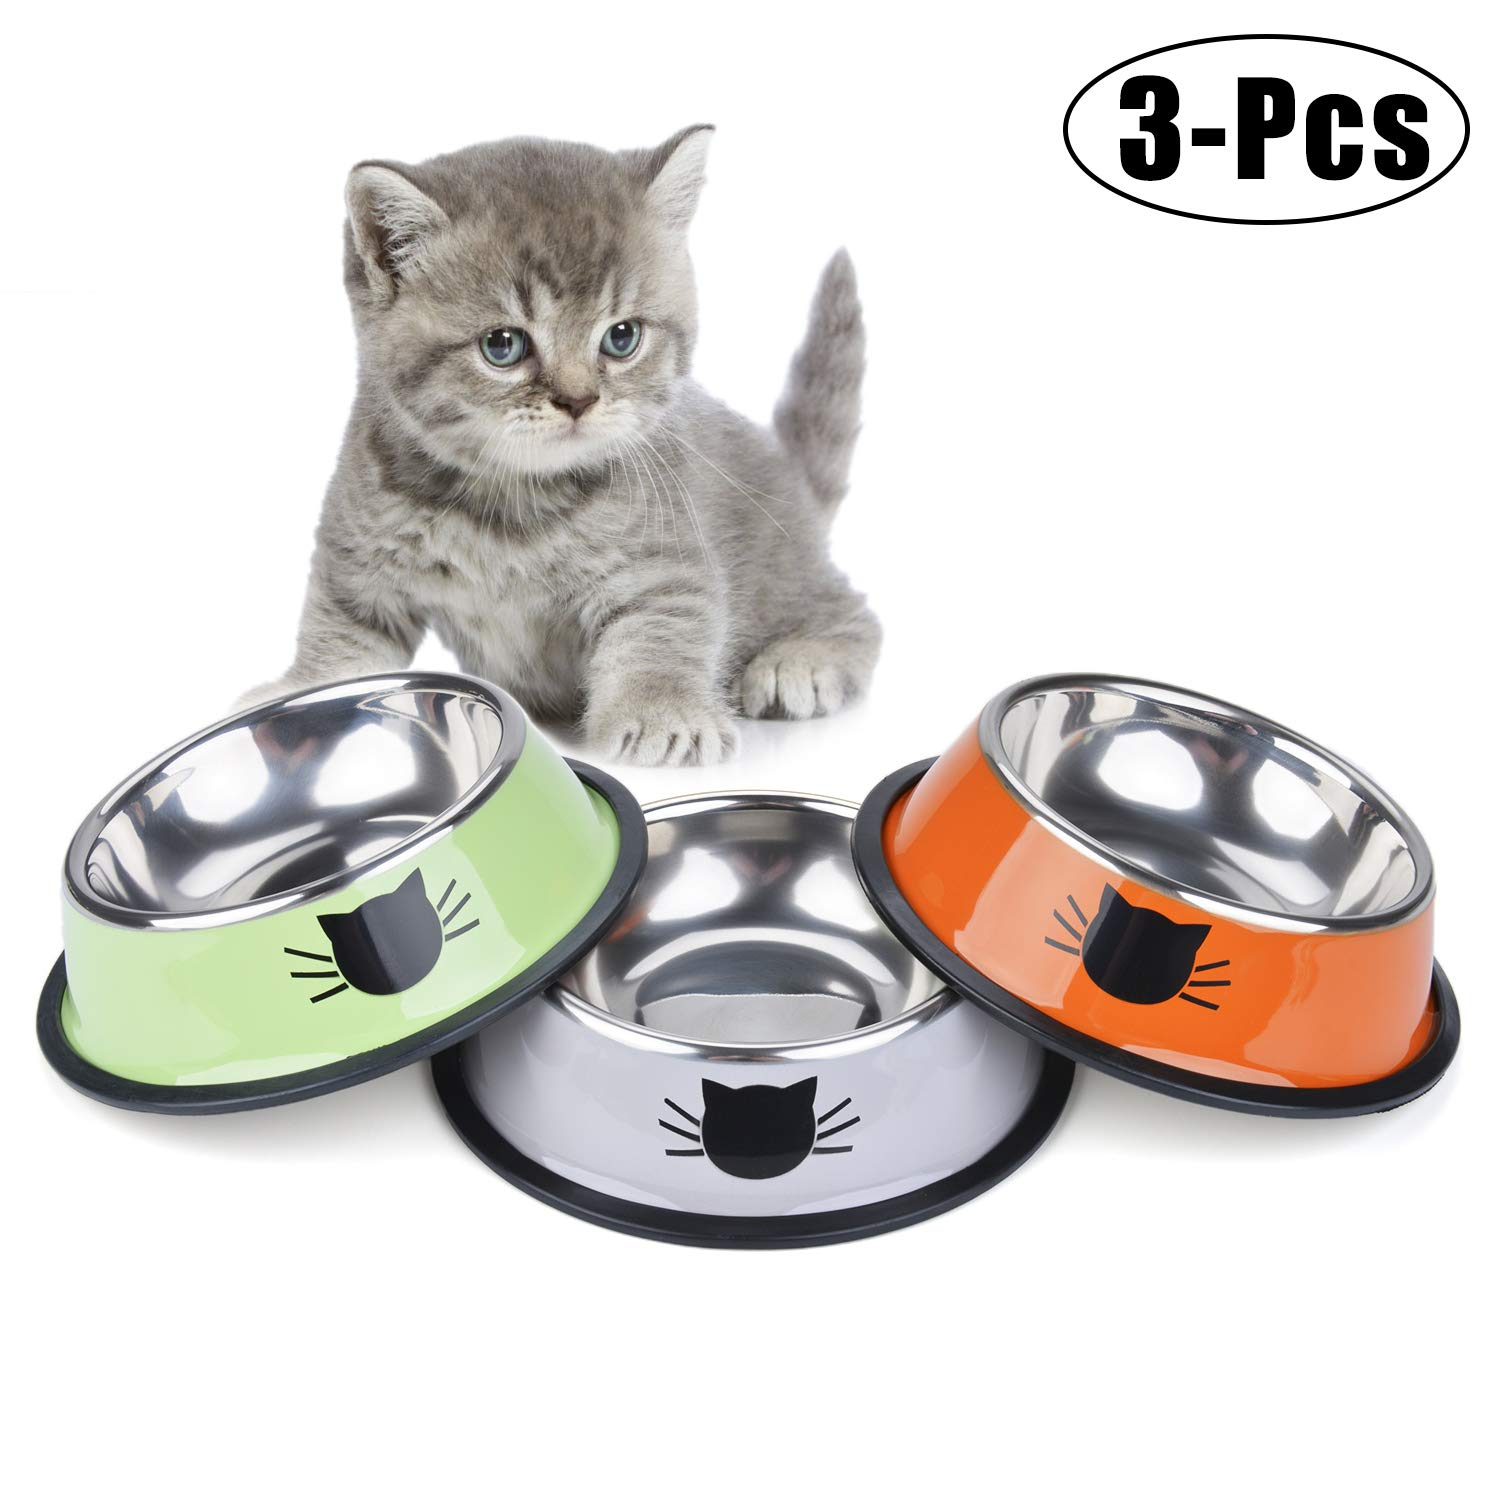 Legendog Cat Bowl Pet Bowl Stainless Steel Cat Food Water Bowl with Non Slip Rubber Base Small Pet Bowl Cat Feeding Bowls Set of 3